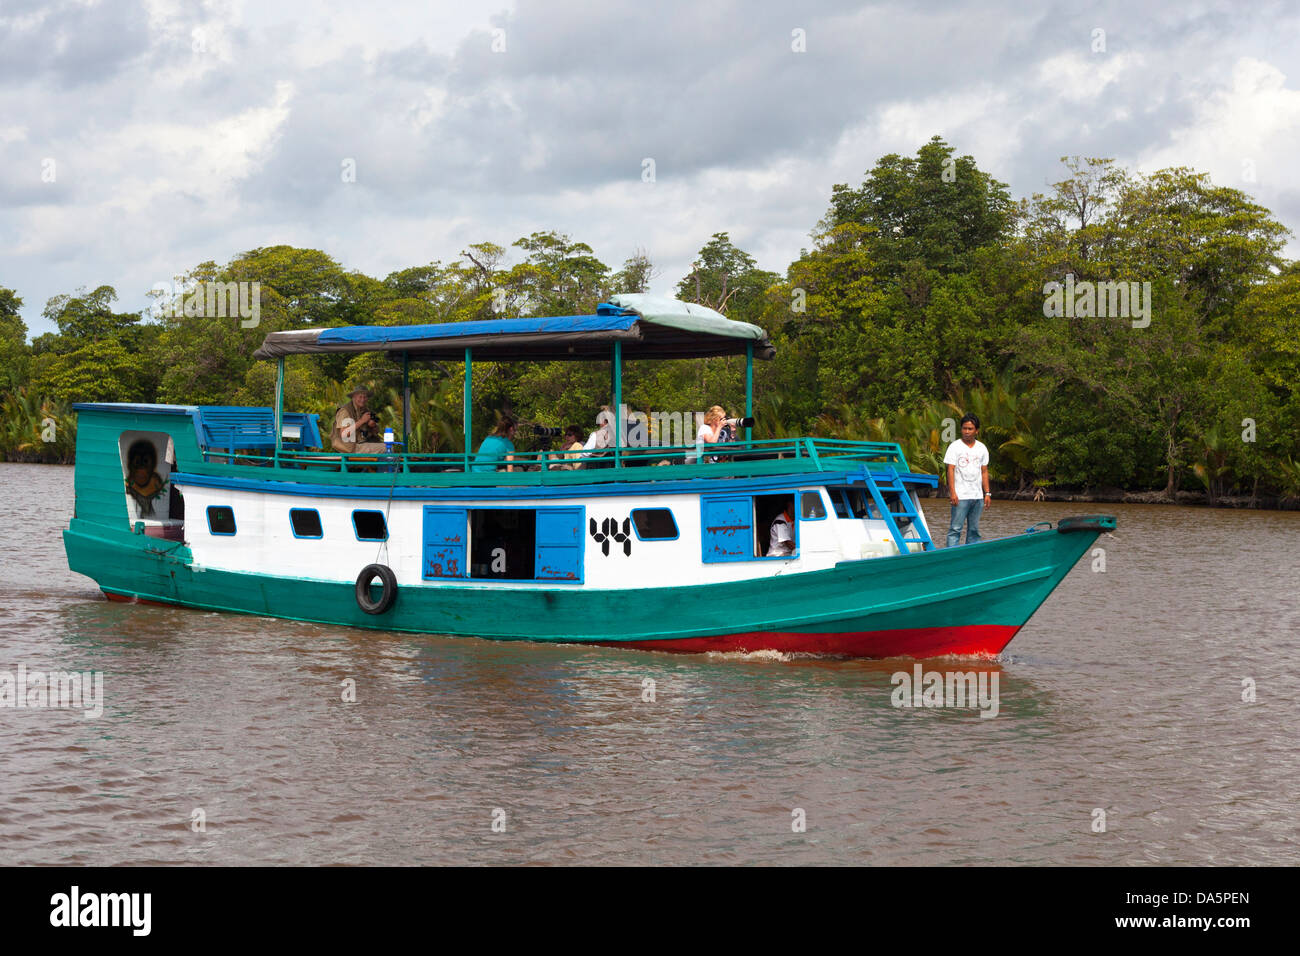 Indonesian guide and tourists on a klotok, a traditional  river boat, on the Kumai River in central Kalimantan - Stock Image